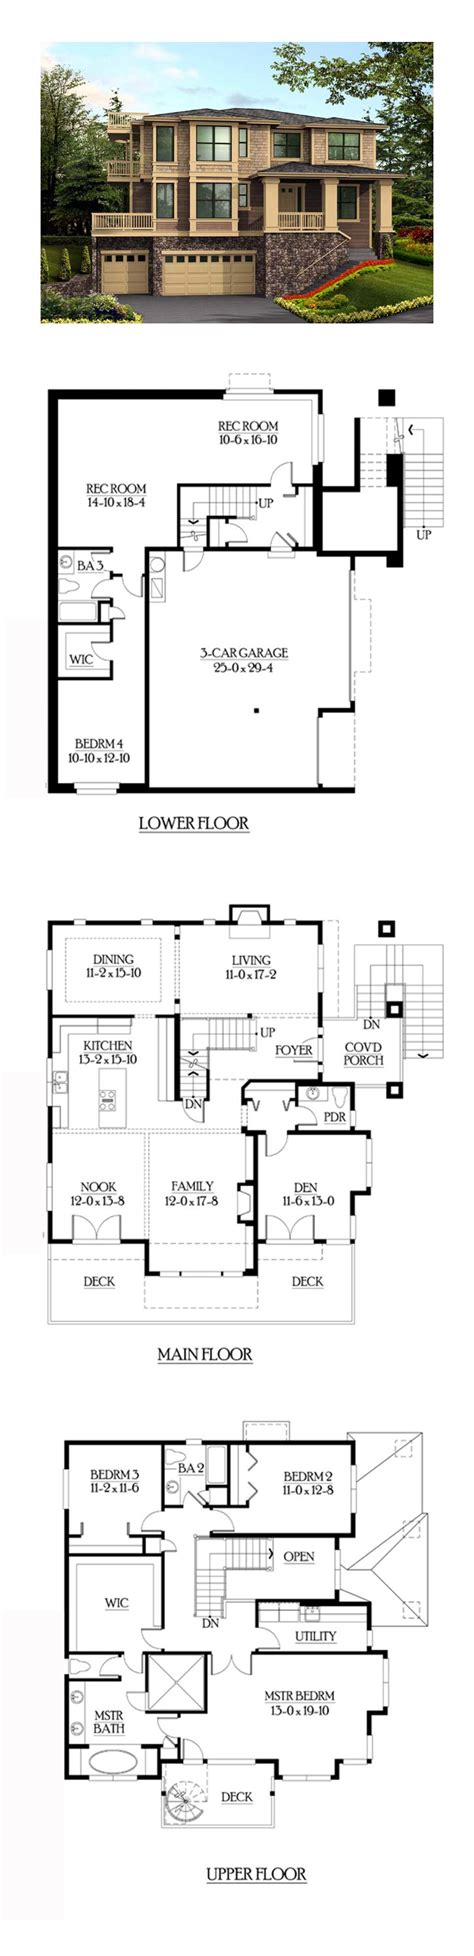 House Plans Basement by Best 25 Basement House Plans Ideas On House